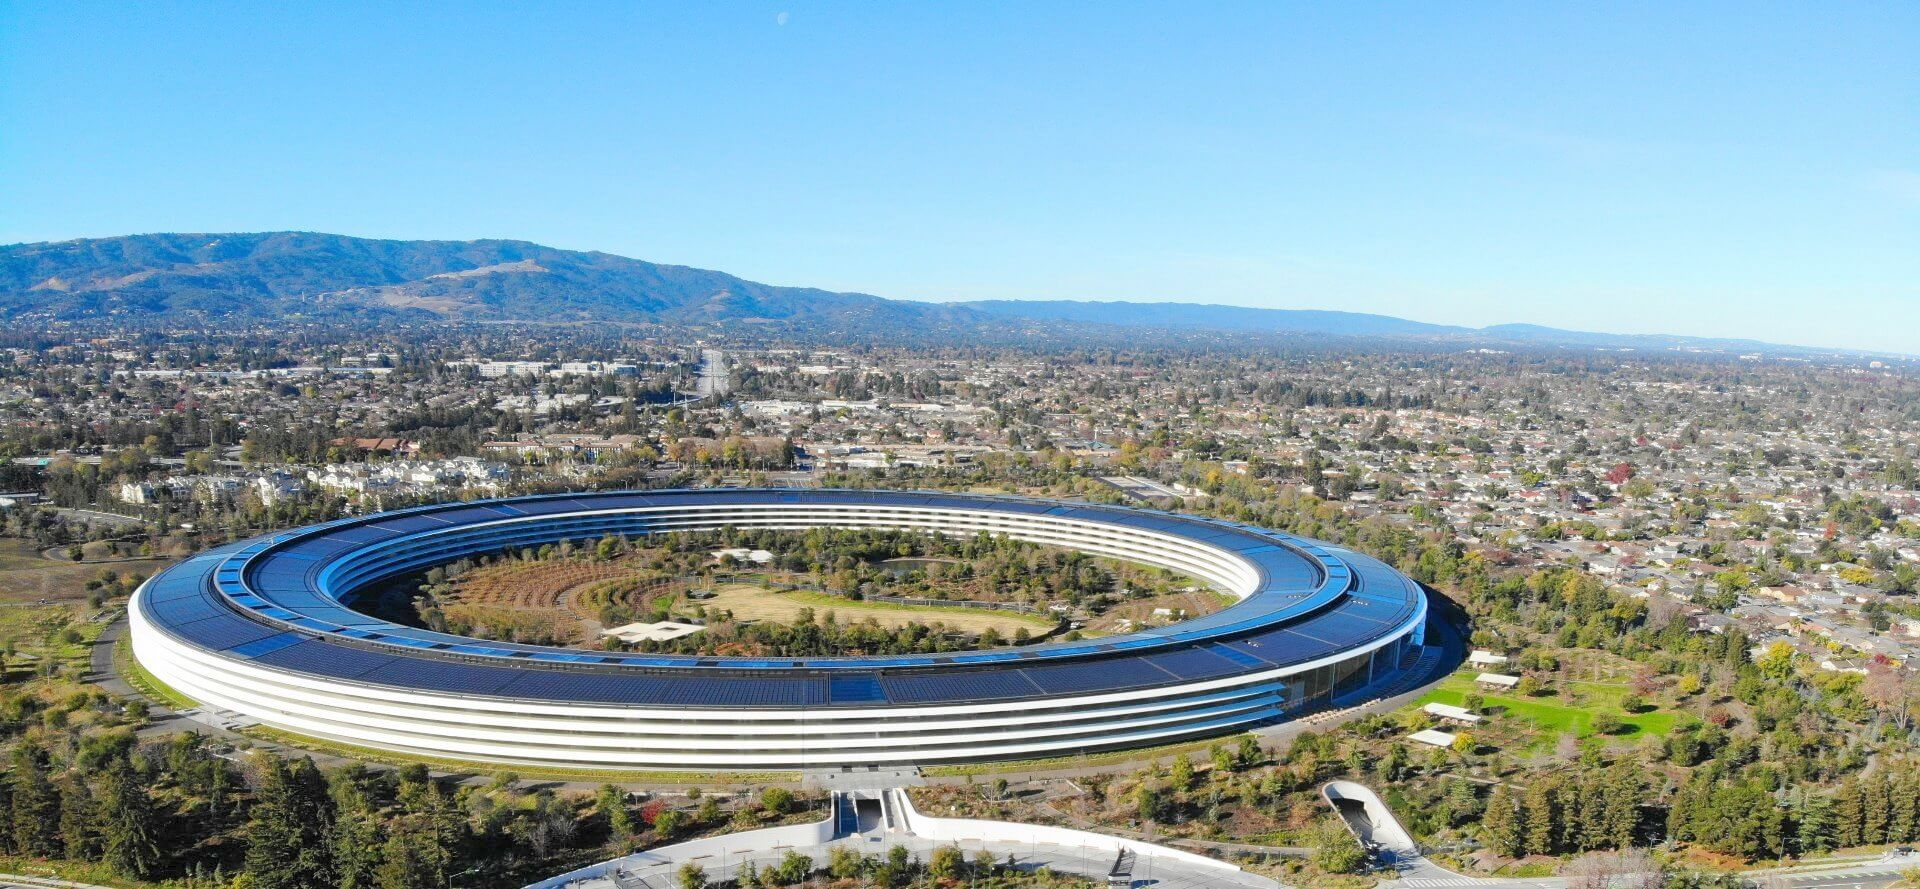 Apple's-Spaceship-Headquarter-Guided-Tour-in-Cupertino